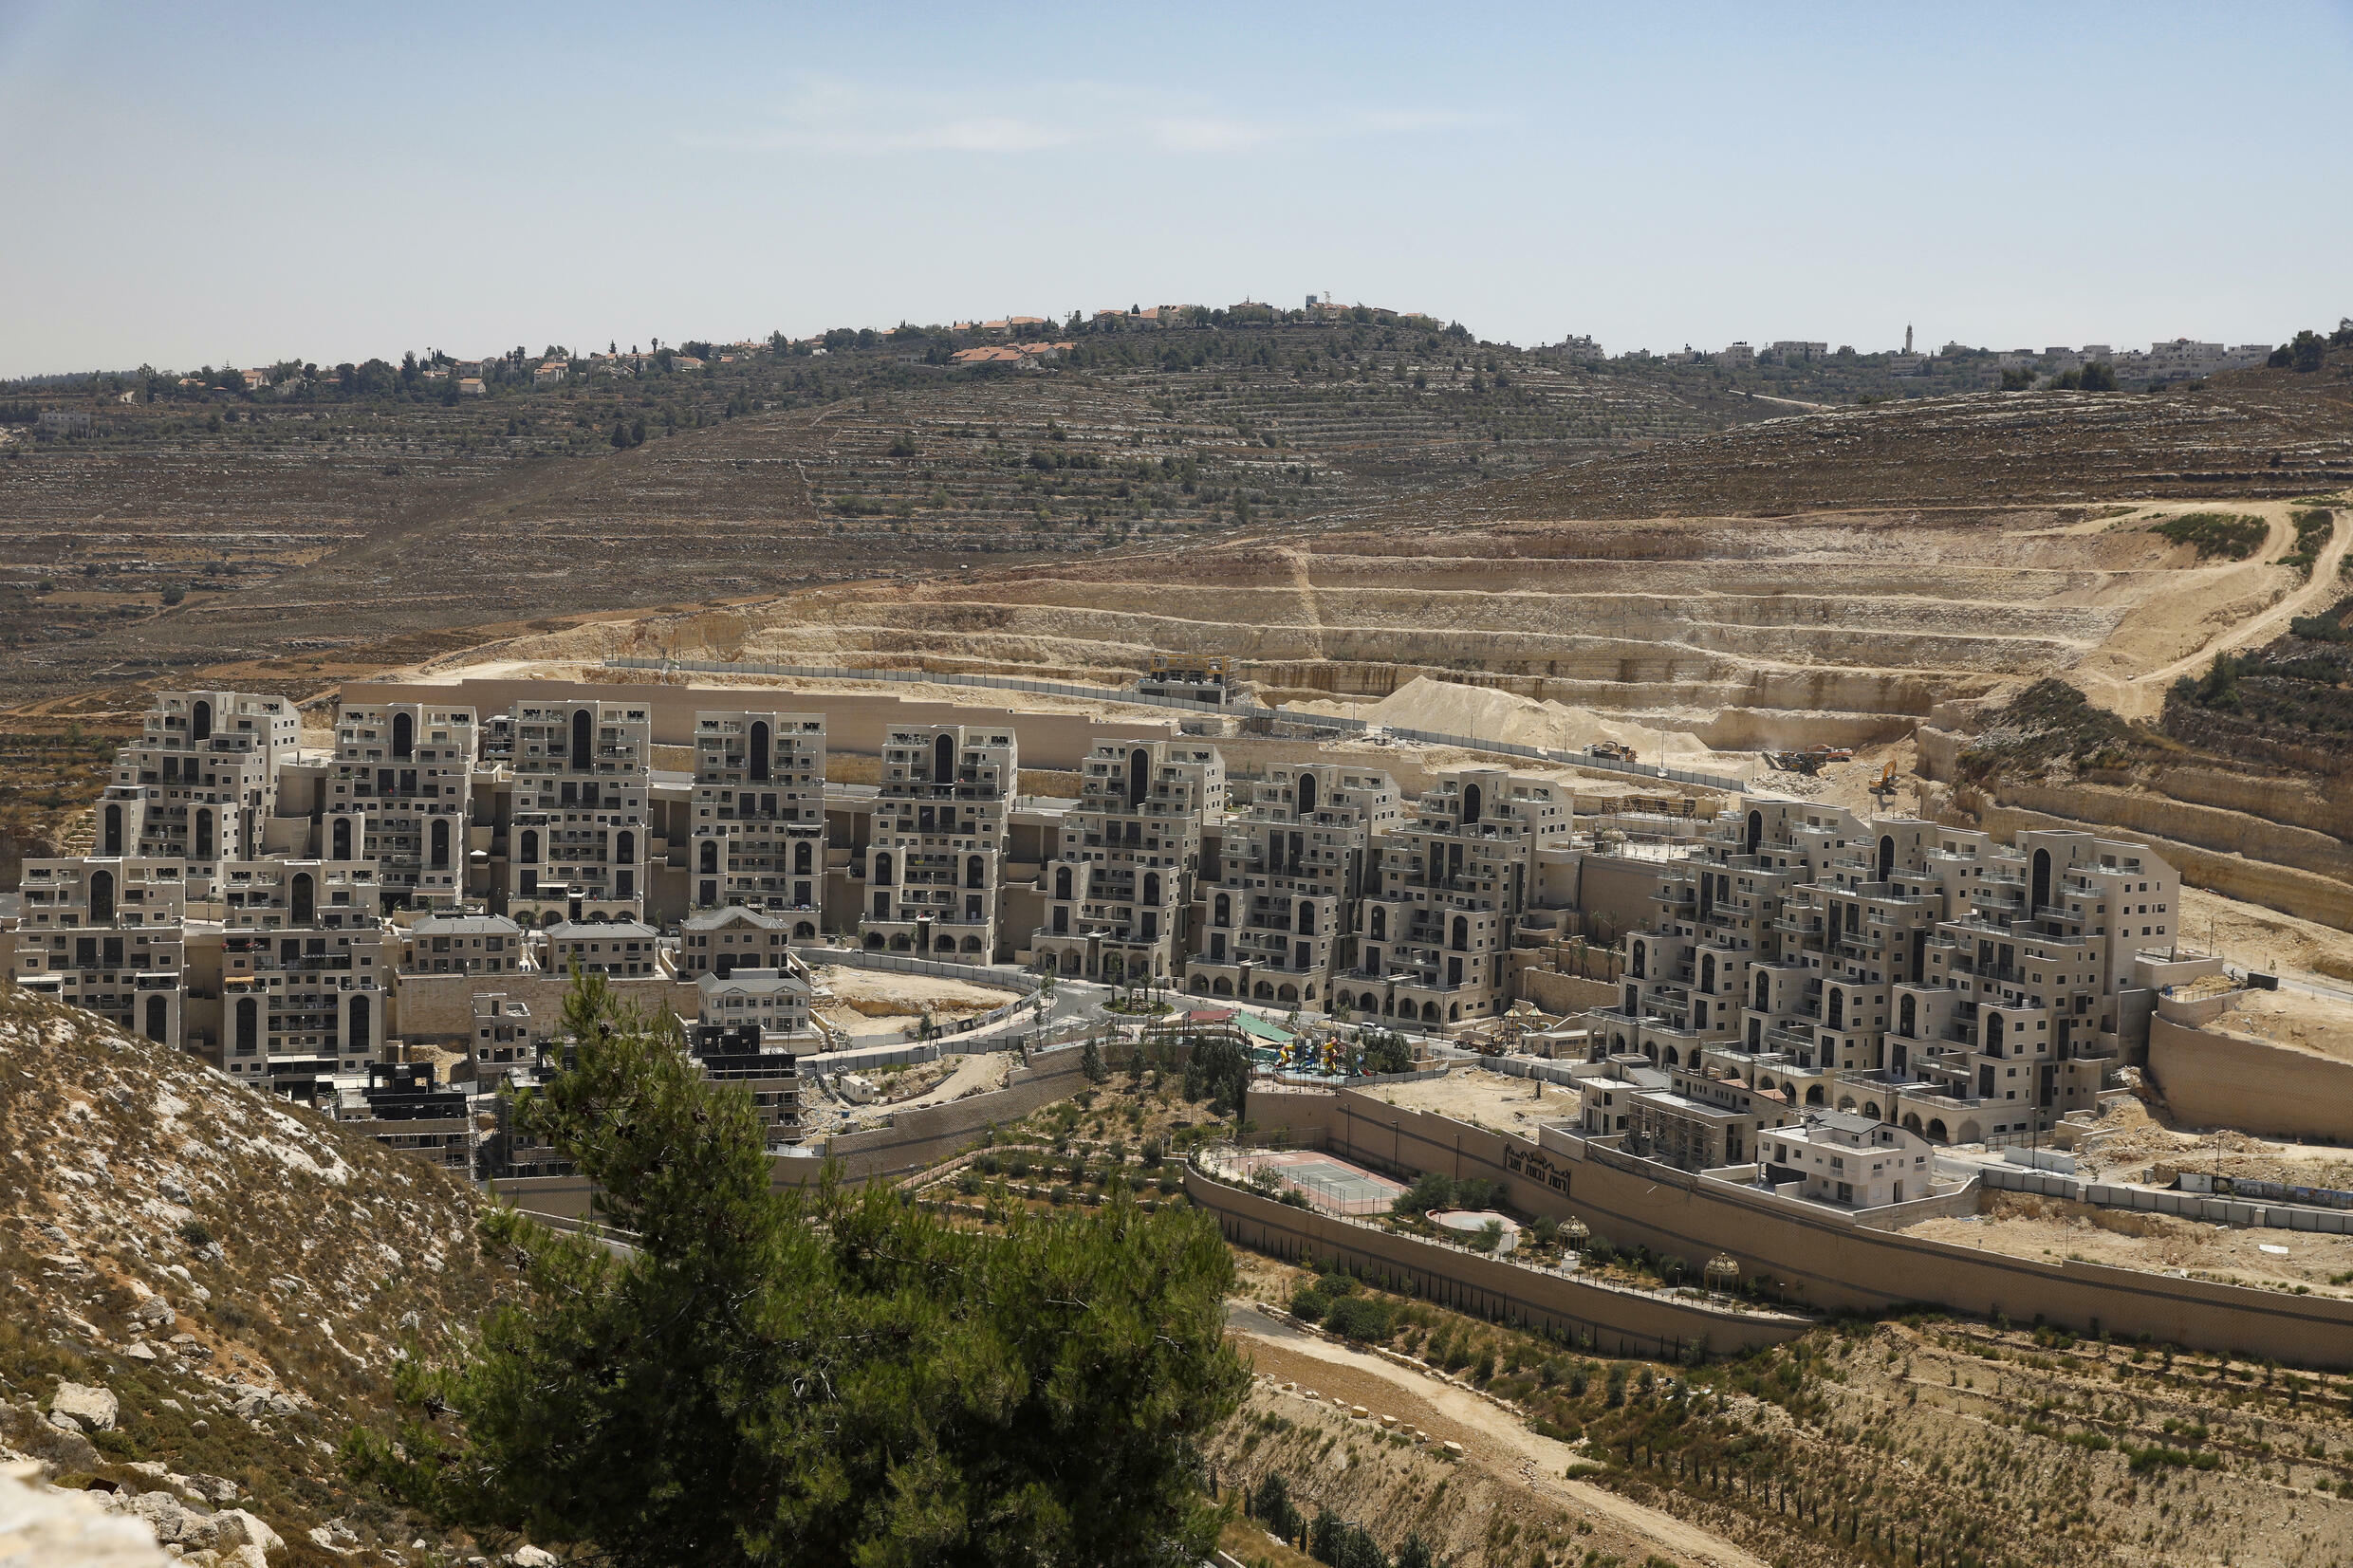 More than 600,000 Israeli Jews live in settlements in the occupied West Bank and east Jerusalem that are considered illegal under international law